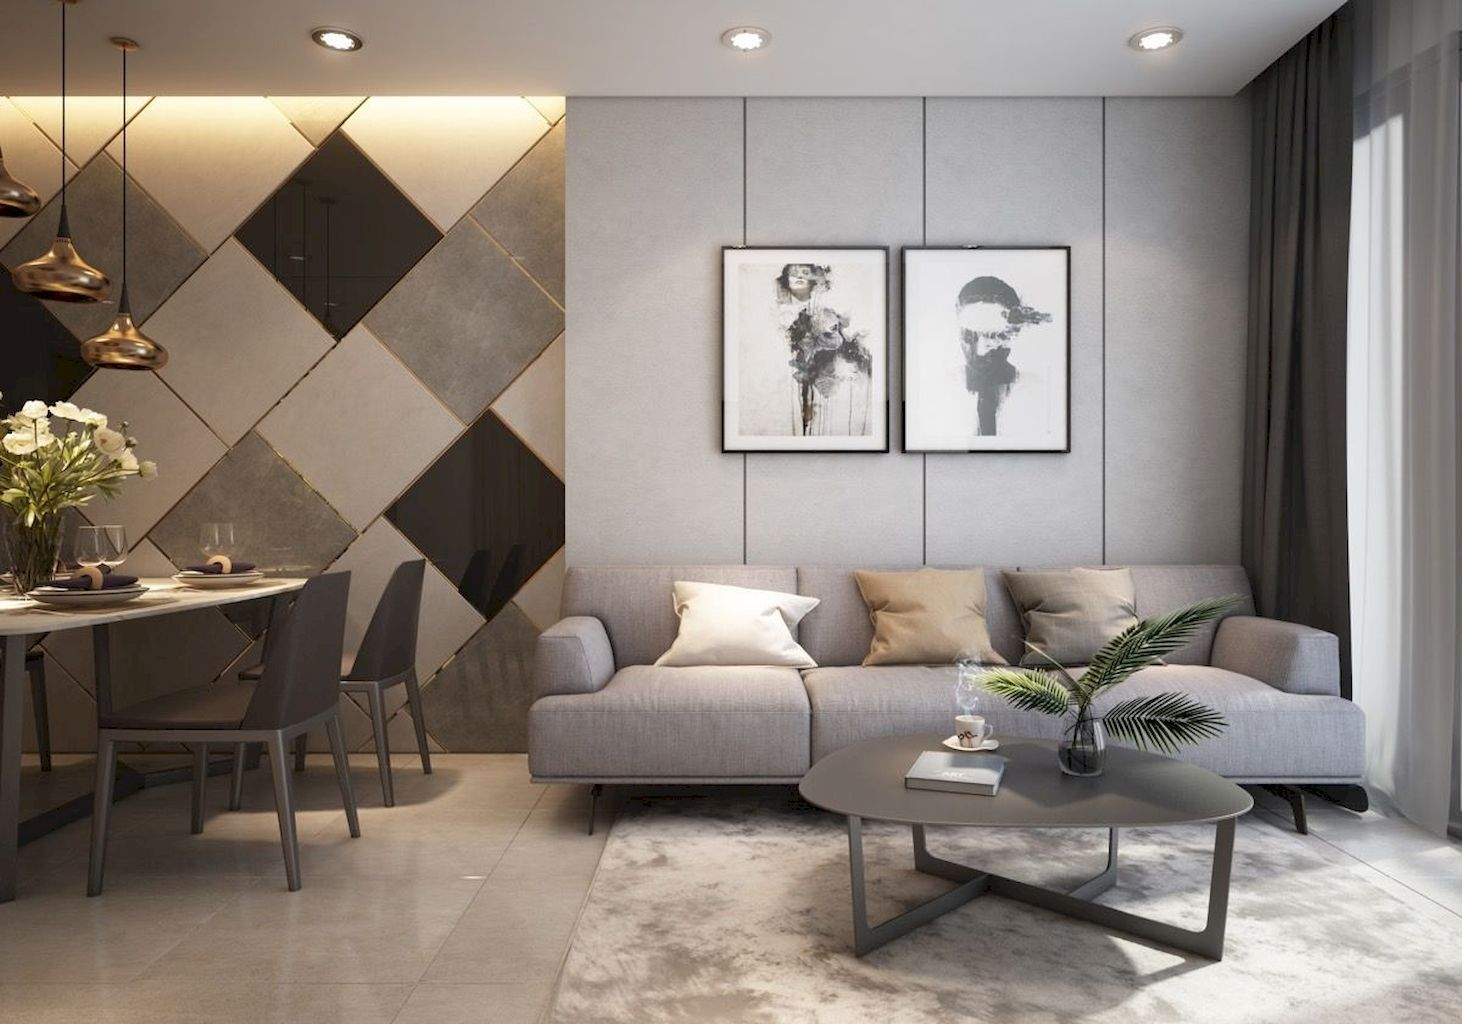 Apartment Design Ideas To Your Space For A More Dynamic Room Homestya Modern Apartment Design Wall Decor Living Room Apartment Small Room Design